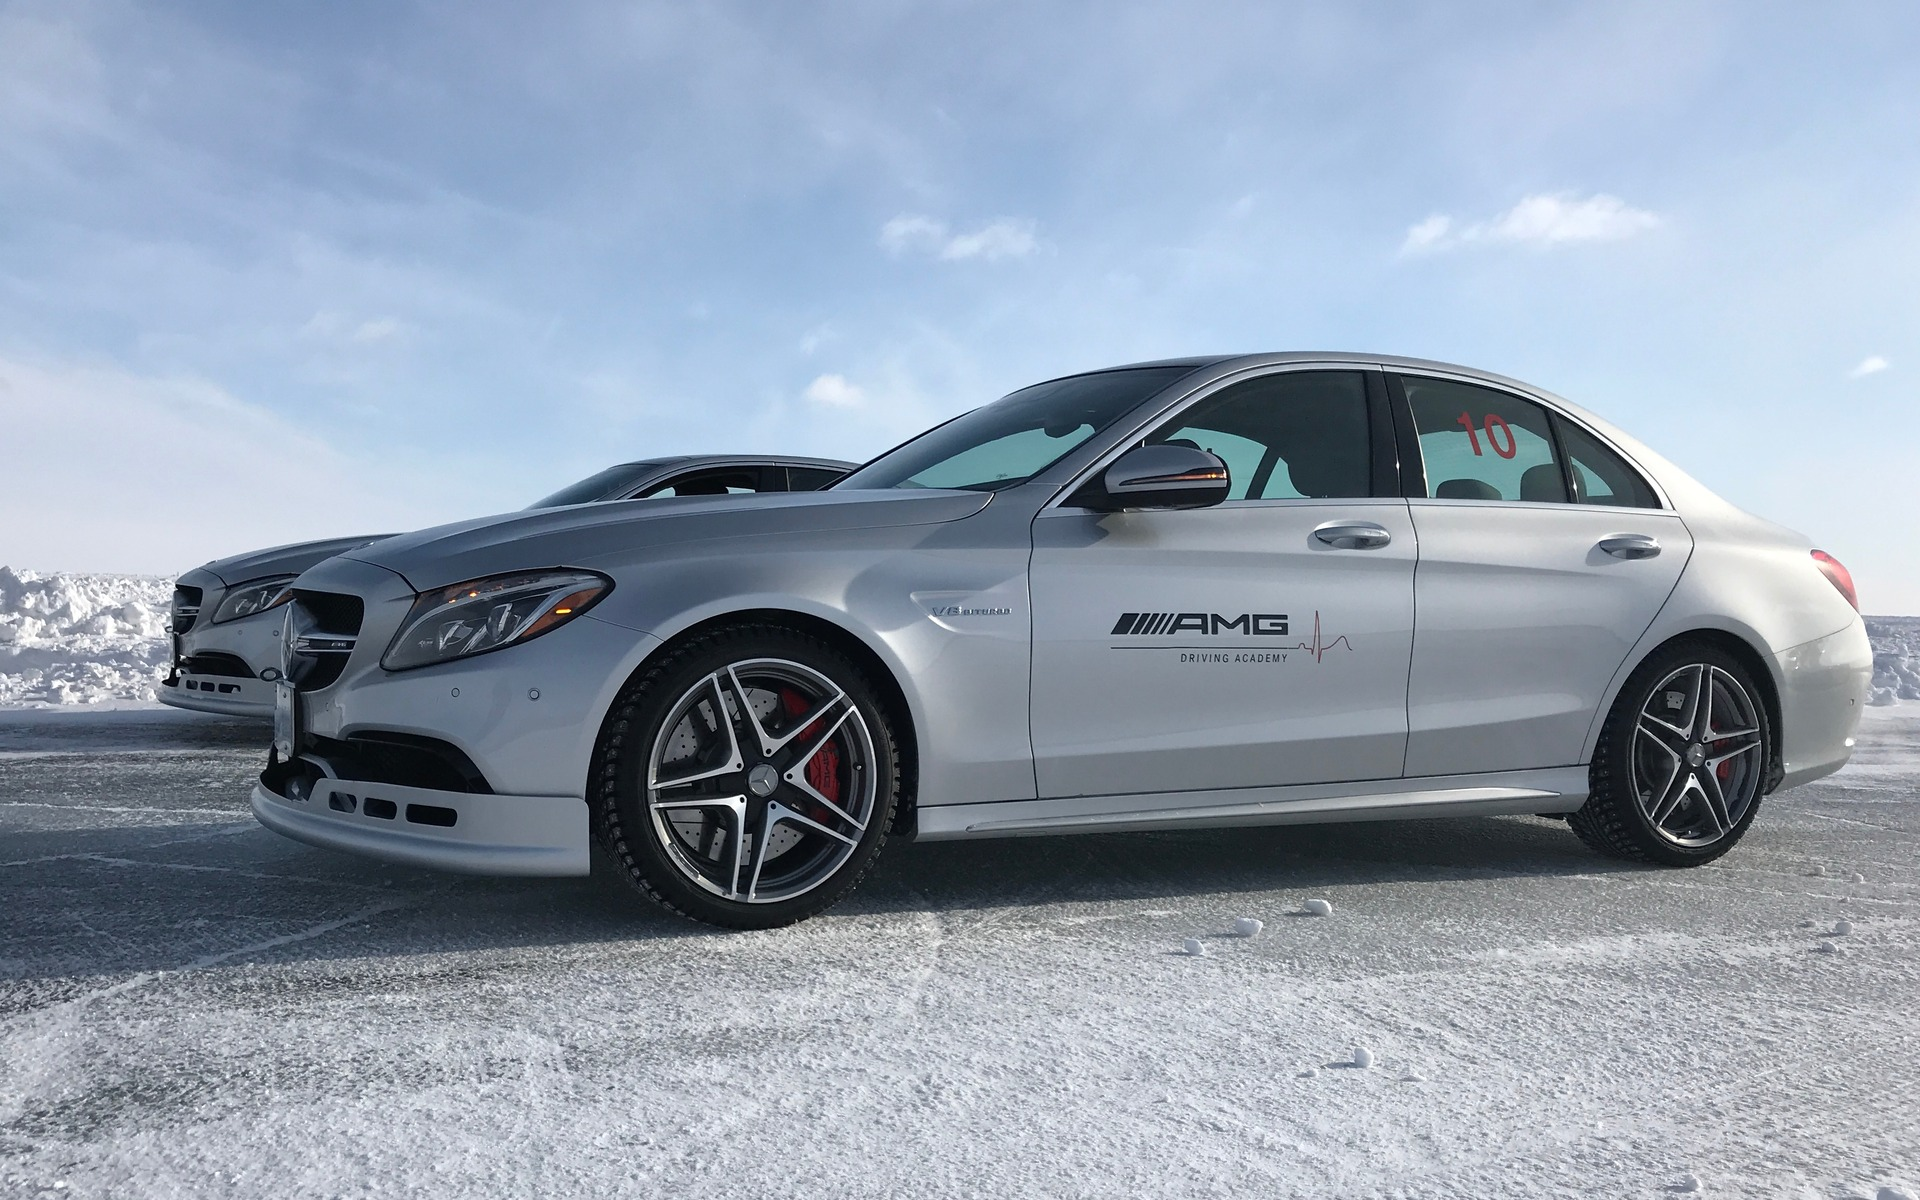 Mercedes-AMG Winter Sporting Academy